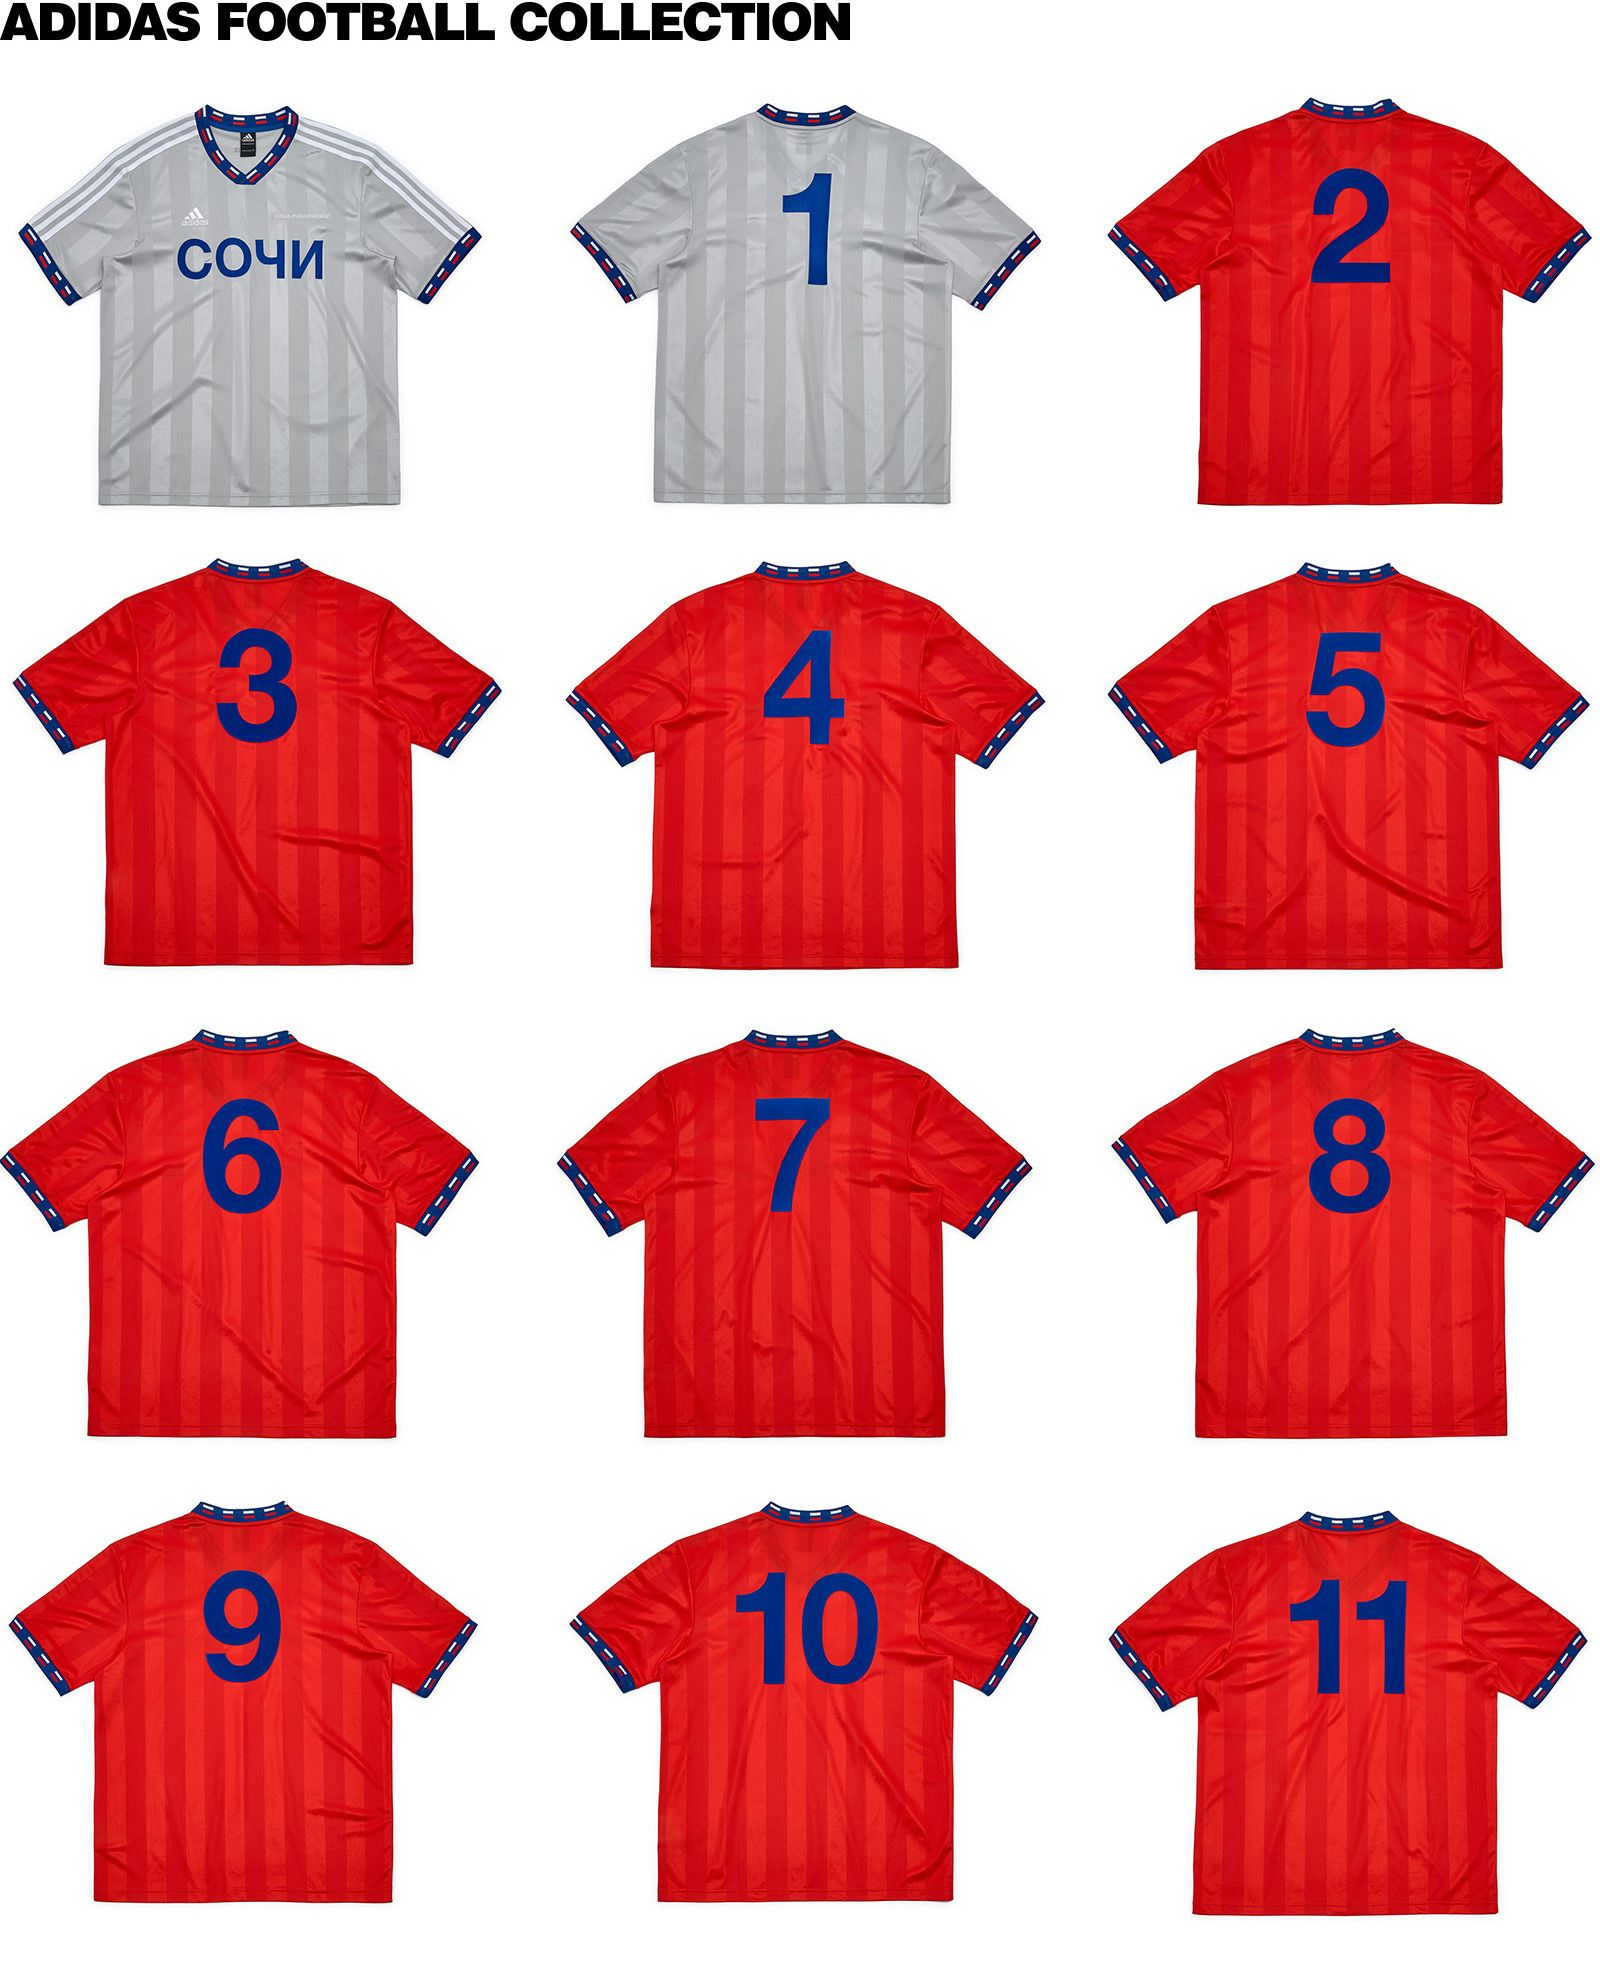 best service ce5fc 1935f gosha football collection